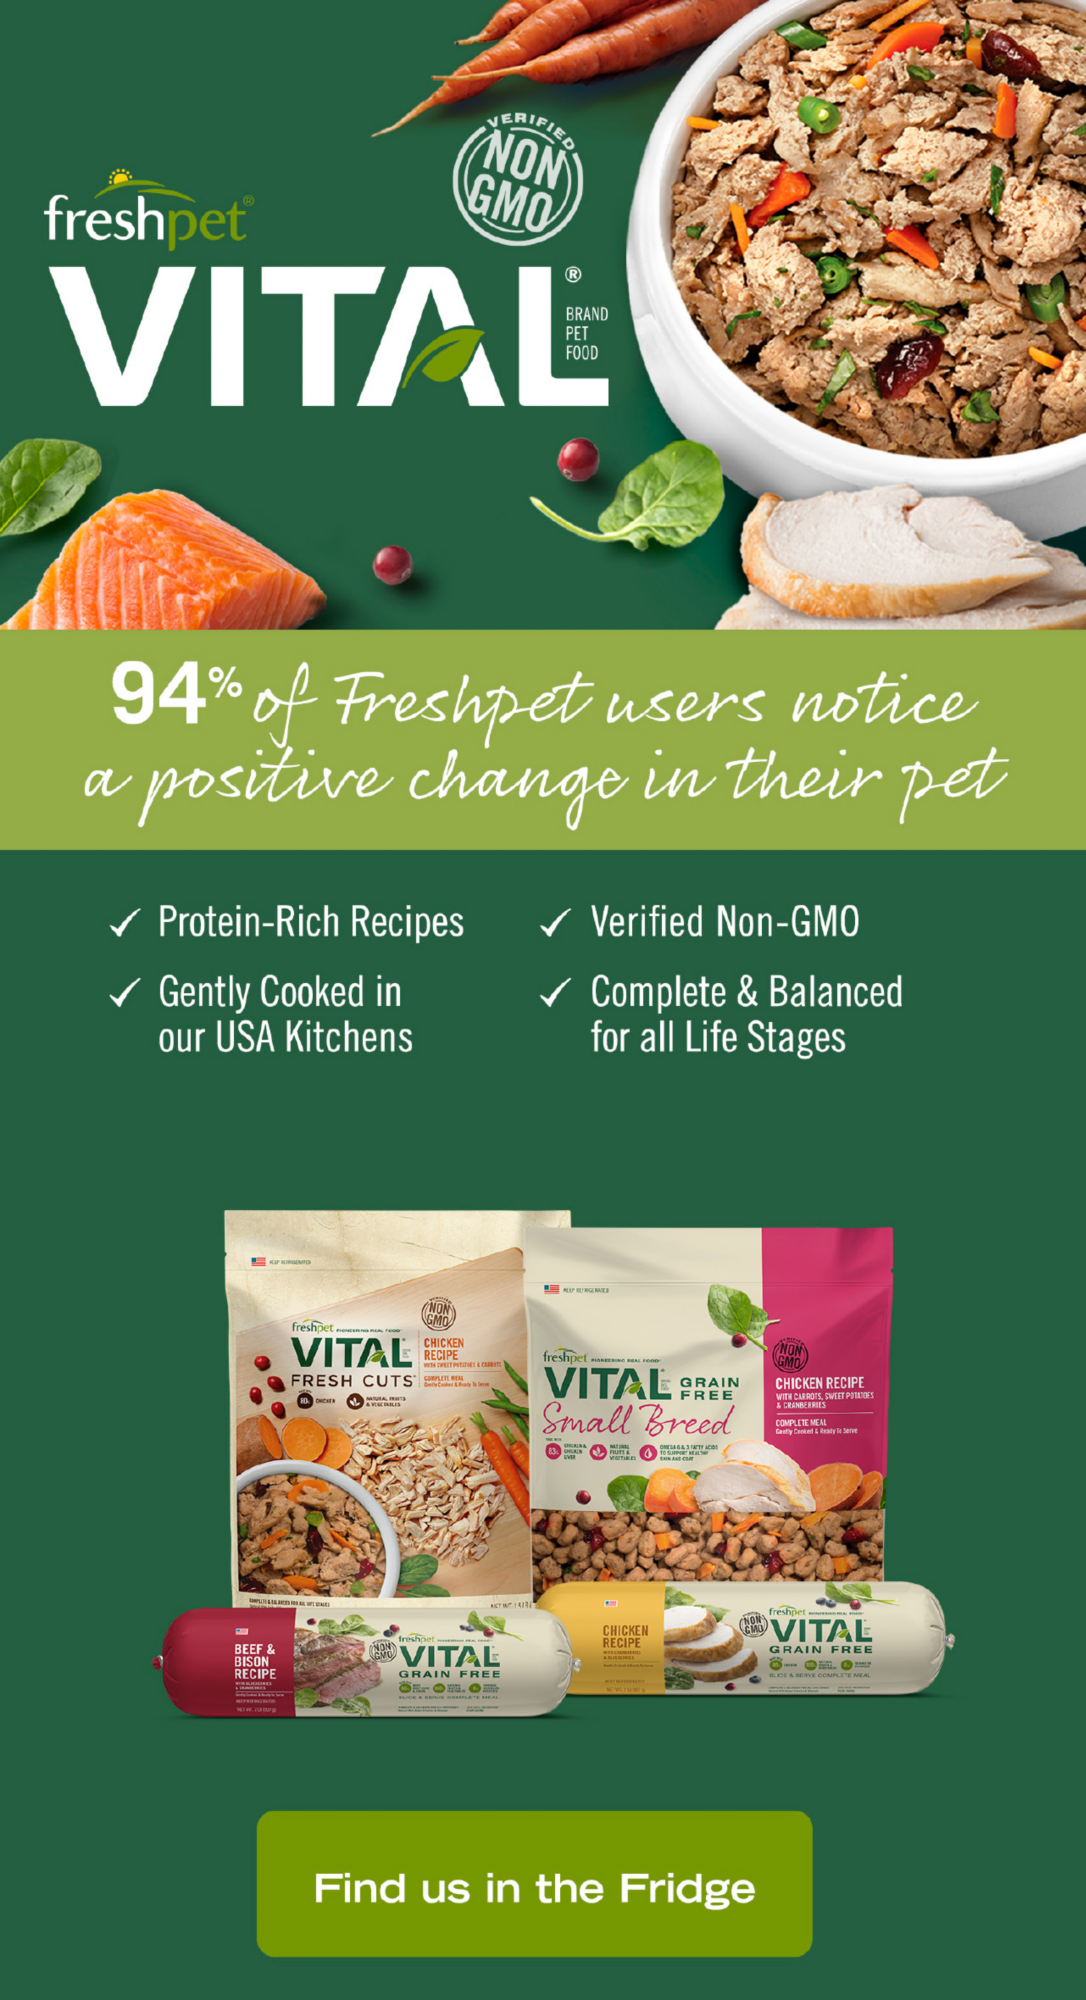 freshpet                             VITAL                             94% of Freshpet users notice a positive change in their pet                             - Protein-Rich Recipes                             - Verified Non-GMO                             - Gently Cooked in our USA Kitchens                             - Complete & Balanced for all Life Stages                             Find us in the Fridge